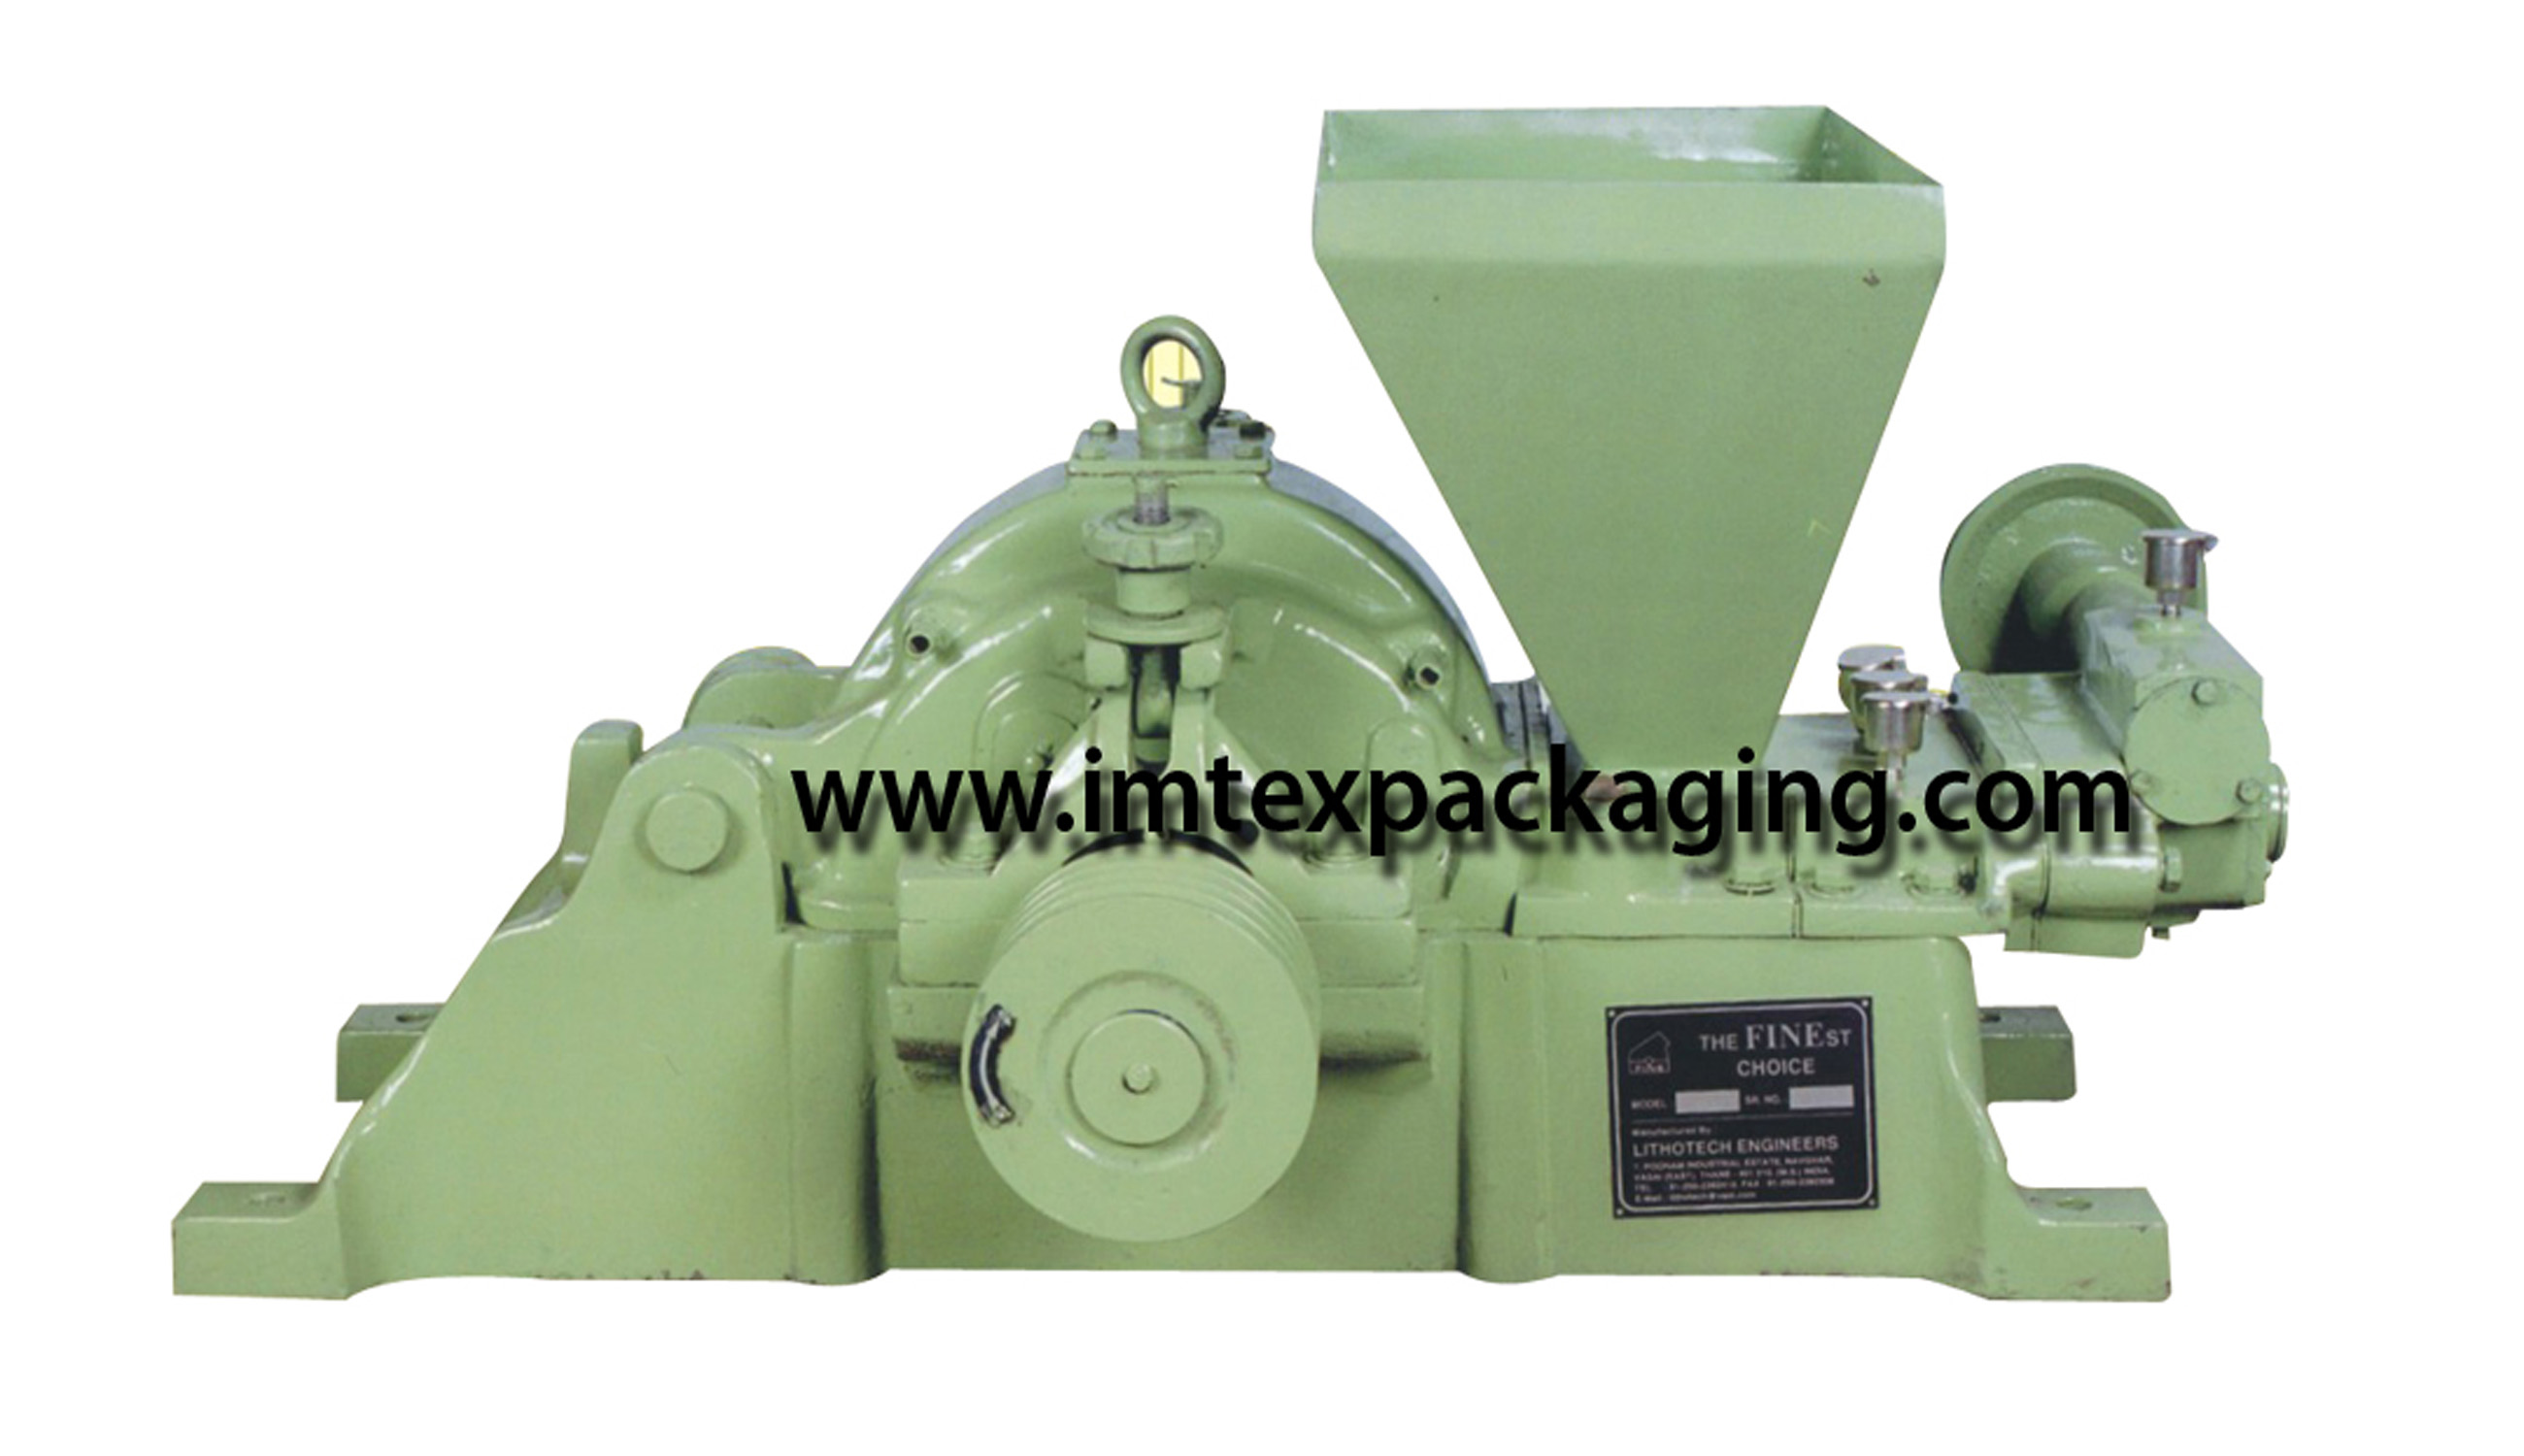 Imtex Packaging | Micro Pulverizer Spices Grinding Machine